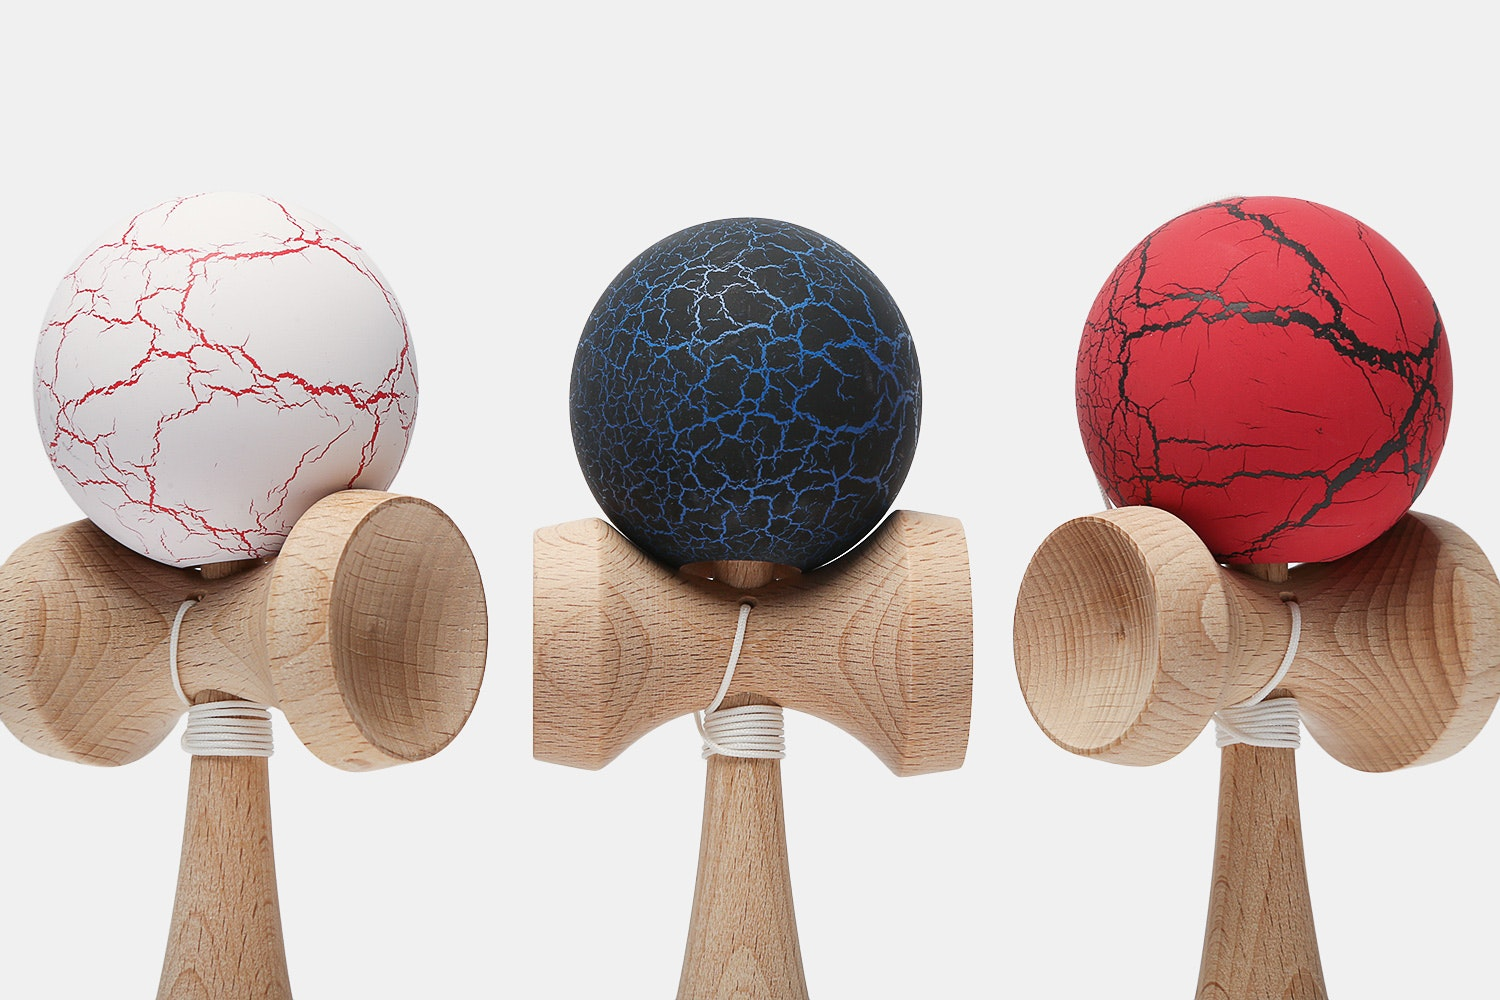 Yomega Kendama Pro: Cracked Earth (3-Pack)